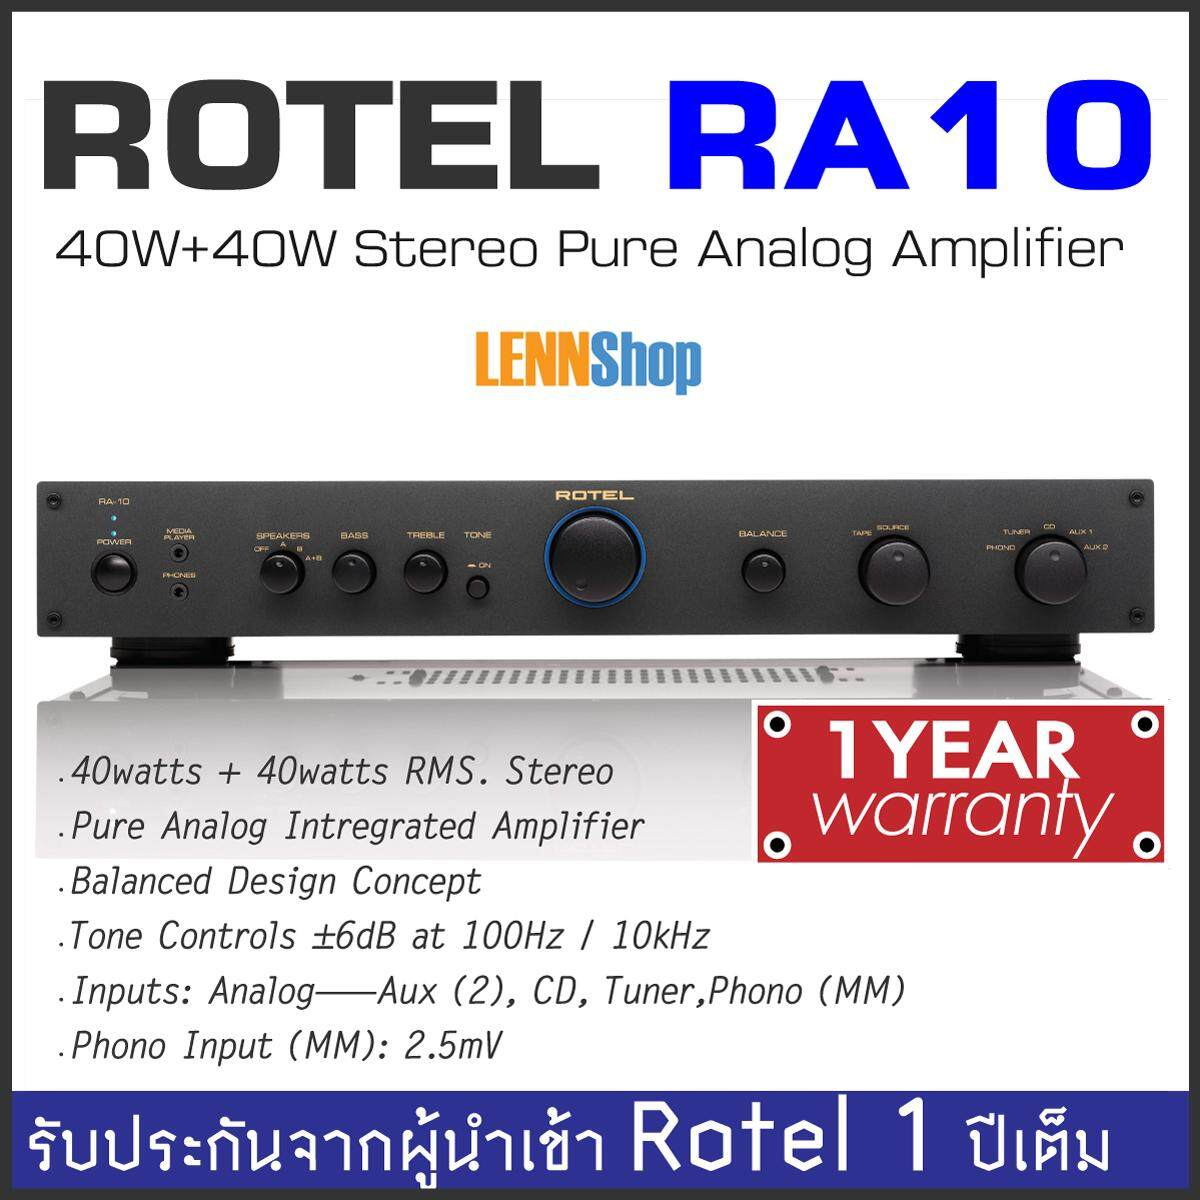 Rotel Thailand Ra 1520 Integrated Amplifier 10 Stereo 40 Watts Rms Zonicvision 1